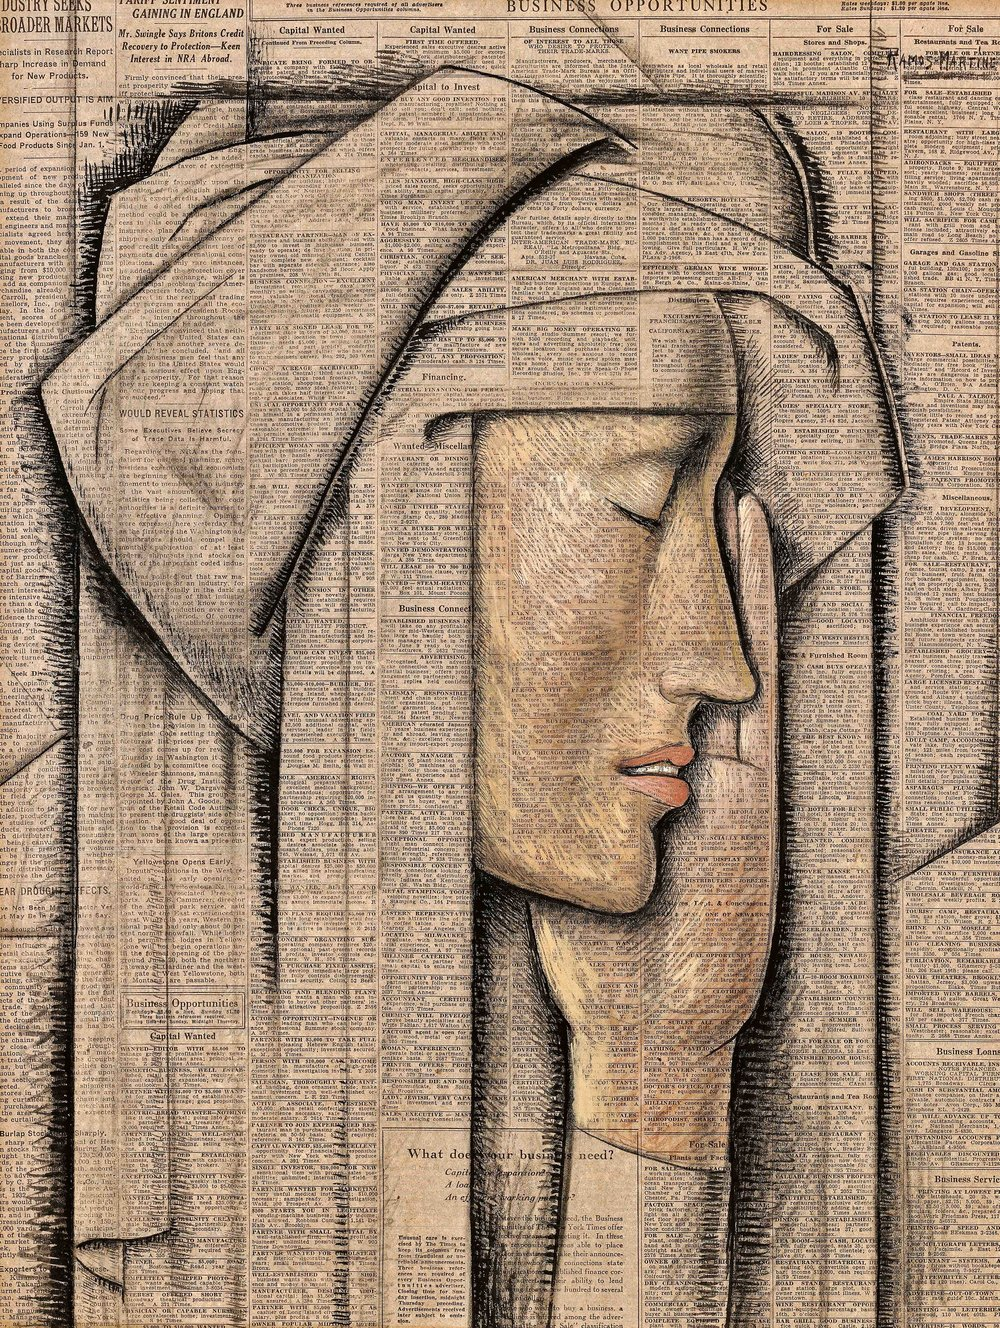 Cabeza de Monja / Head of a Nun  1934 tempera on newsprint / temple sobre papel periódico (New York Times) 20.5 x 15.5 inches; 52.1 x 39.4 centímetros Private collection